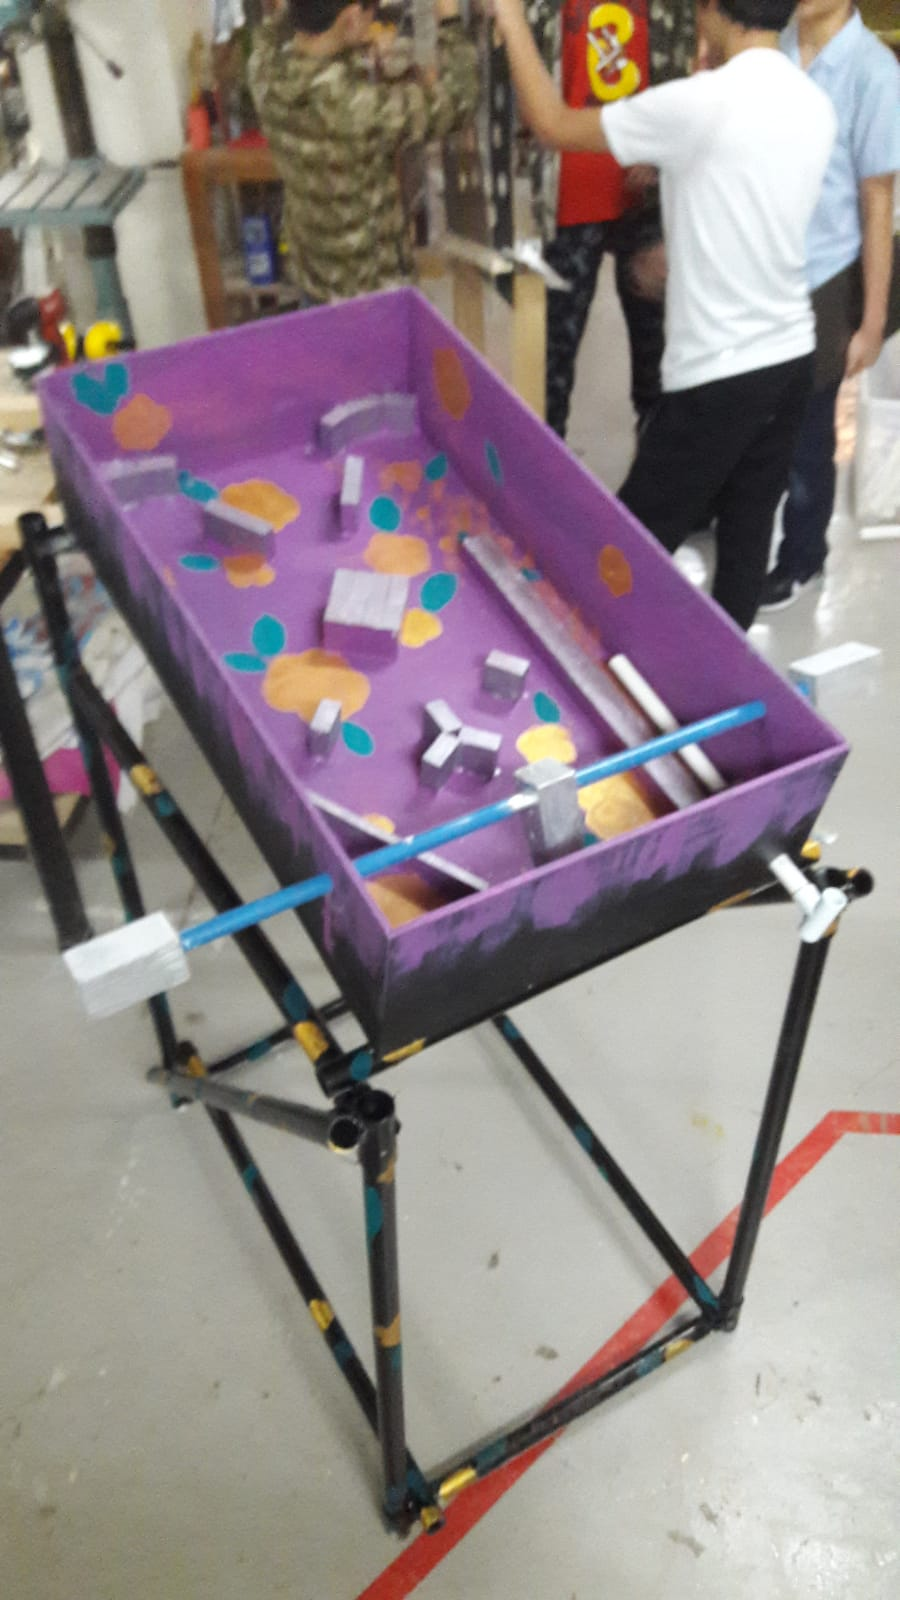 Attaching the Base With the Pinball Machine